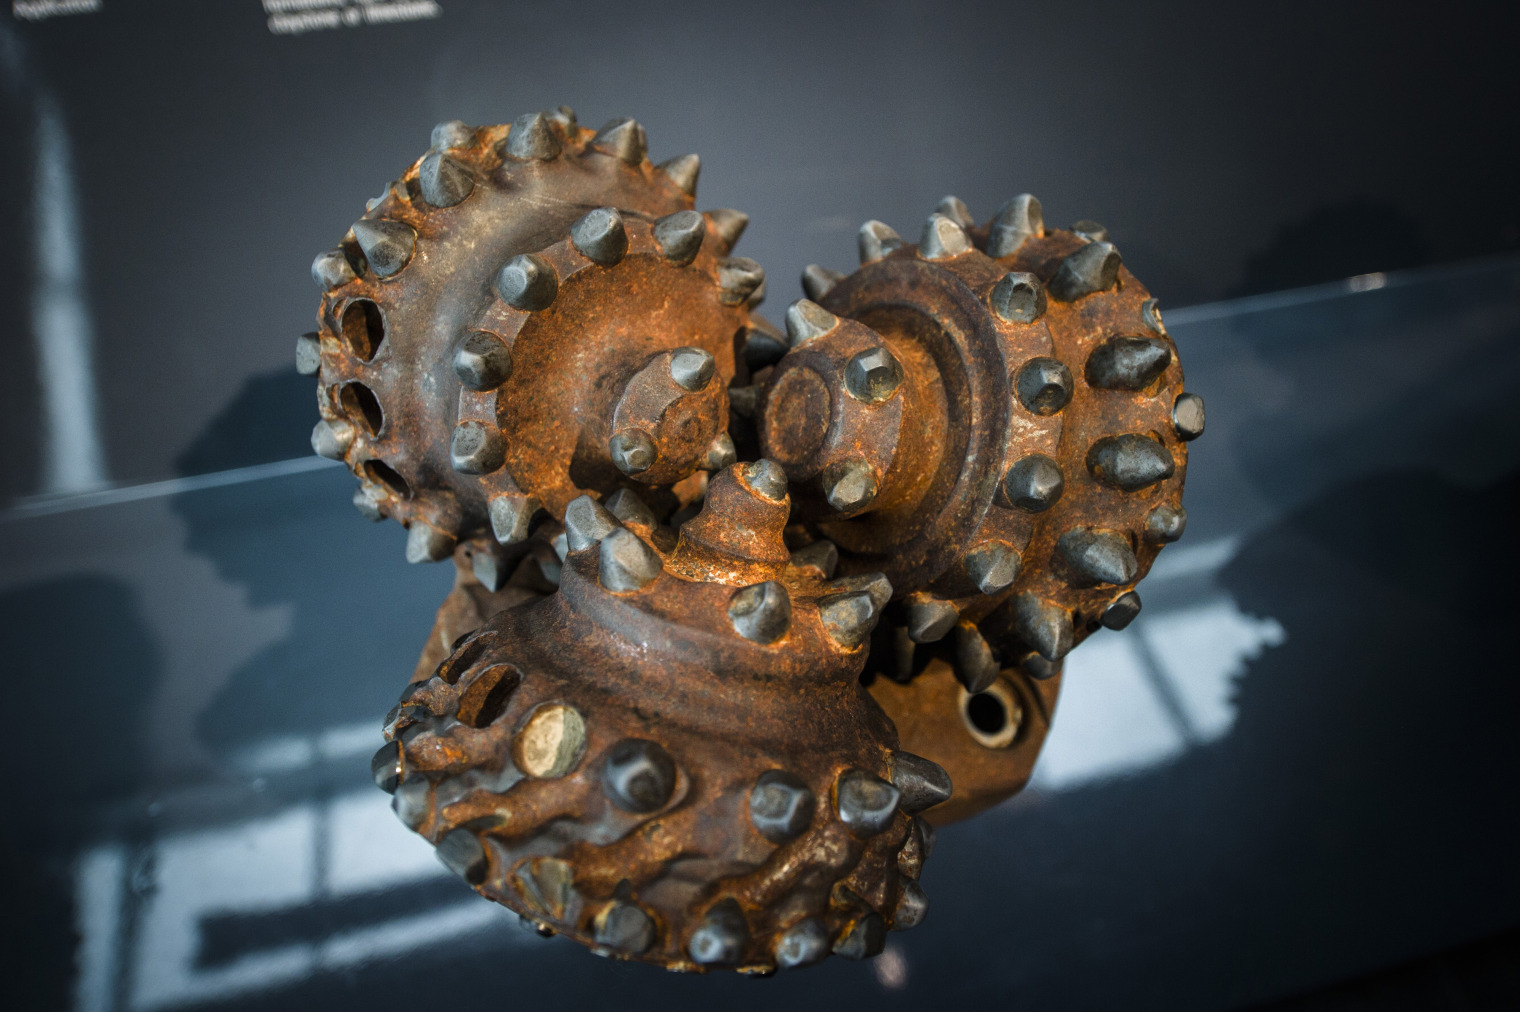 A rotary drilling bit used for oil exploration sits in an exhibition display at the Norwegian Oil Museum in Stavanger, Norway. Photographer: Kristian Helgesen/Bloomberg